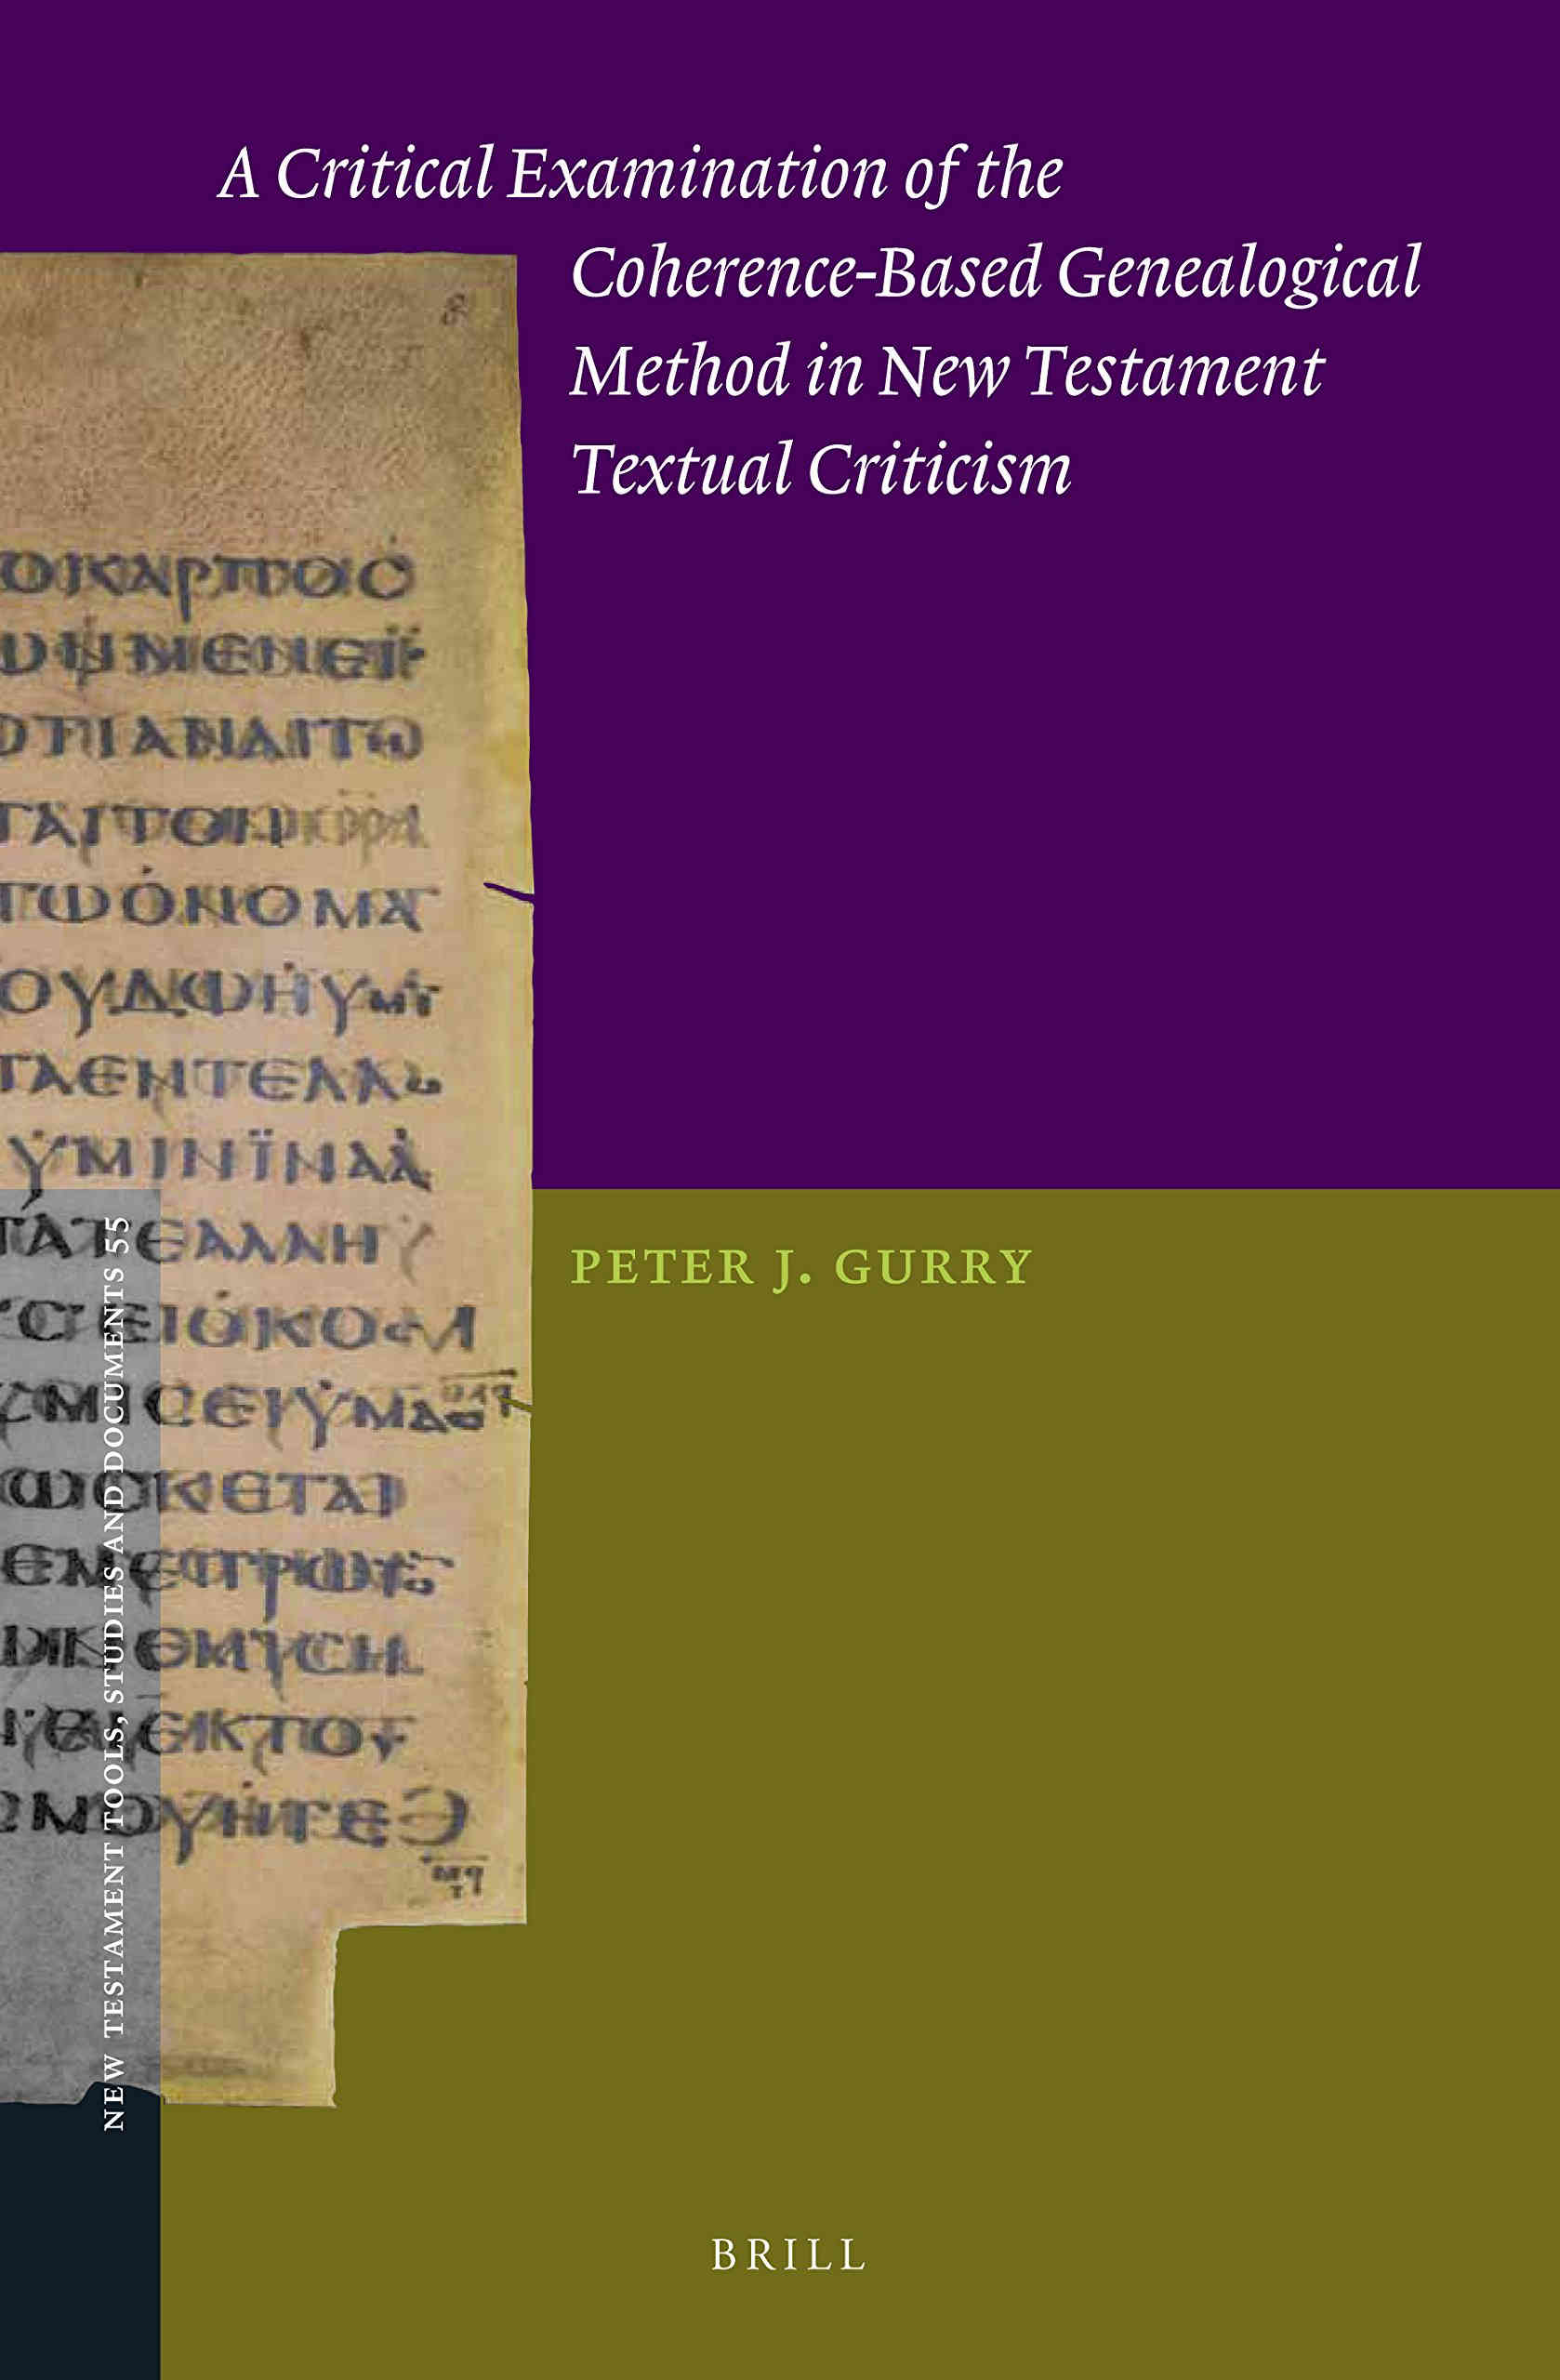 GURRY, P. J. A Critical Examination of the Coherence-Based Genealogical Method in New Testament Textual Criticism. Leiden: Brill, 2017, 254 p.